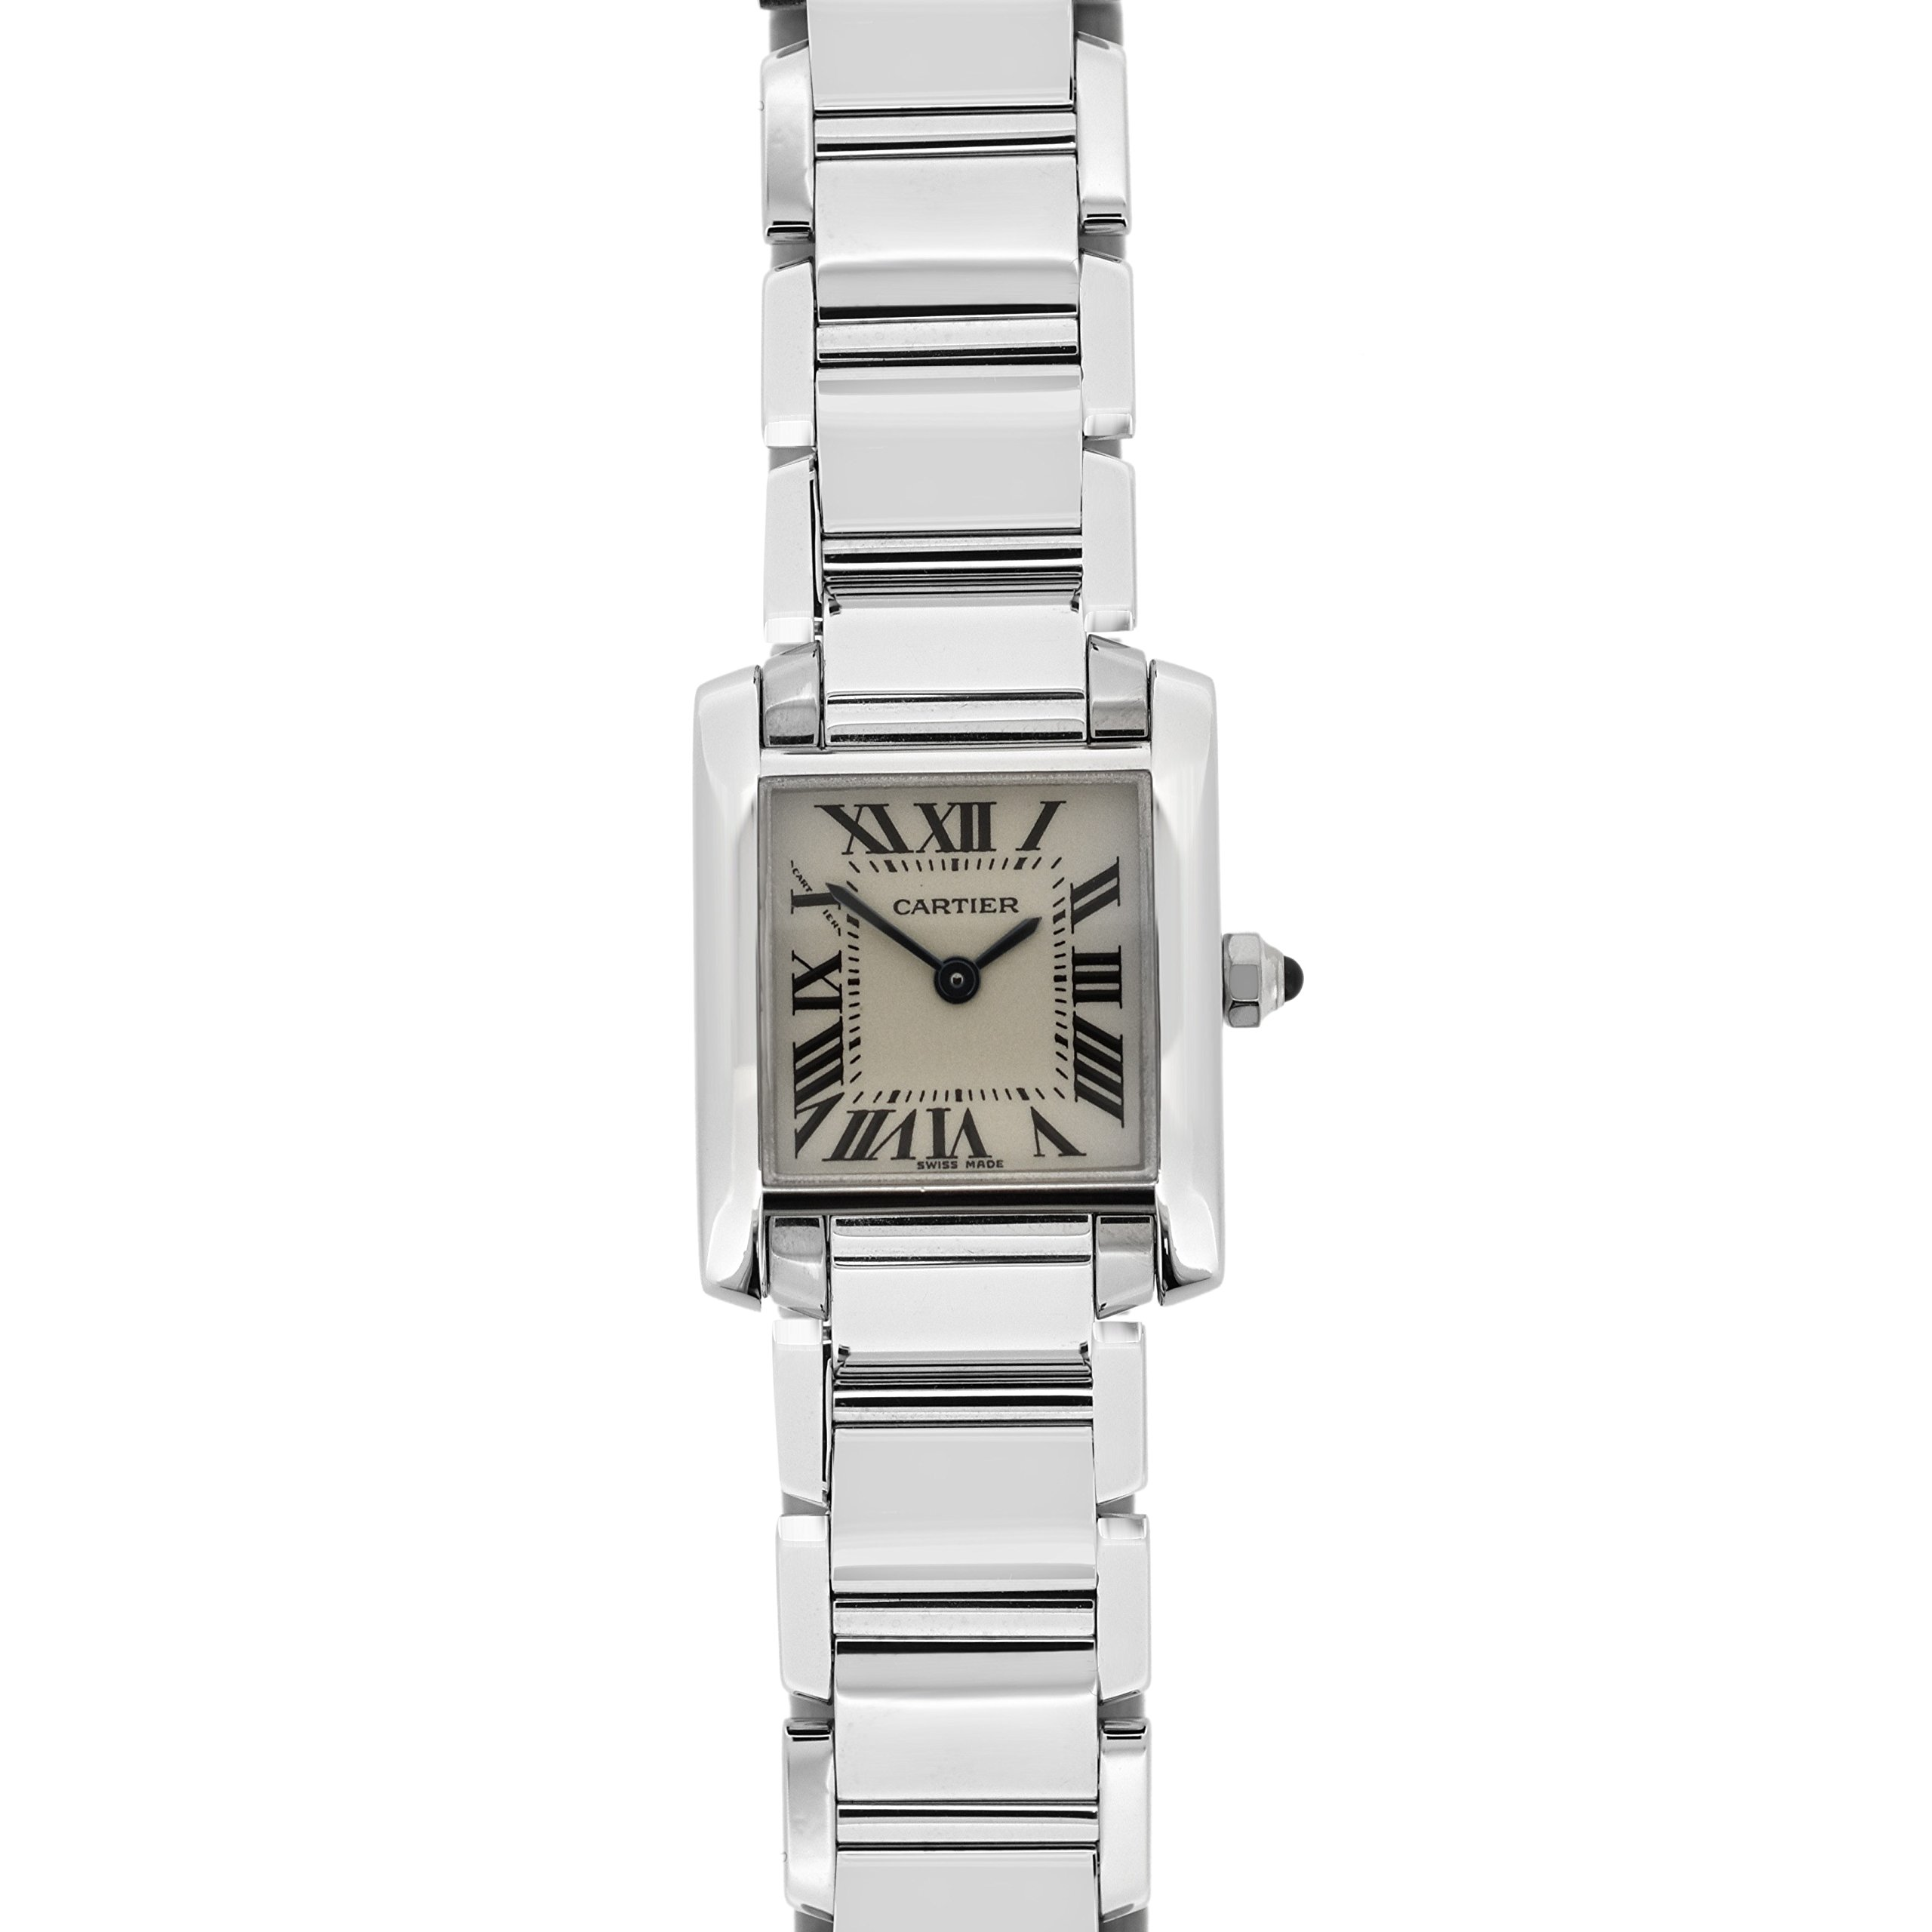 Cartier Tank Francaise quartz womens Watch W50012S3 (Certified Pre-owned)